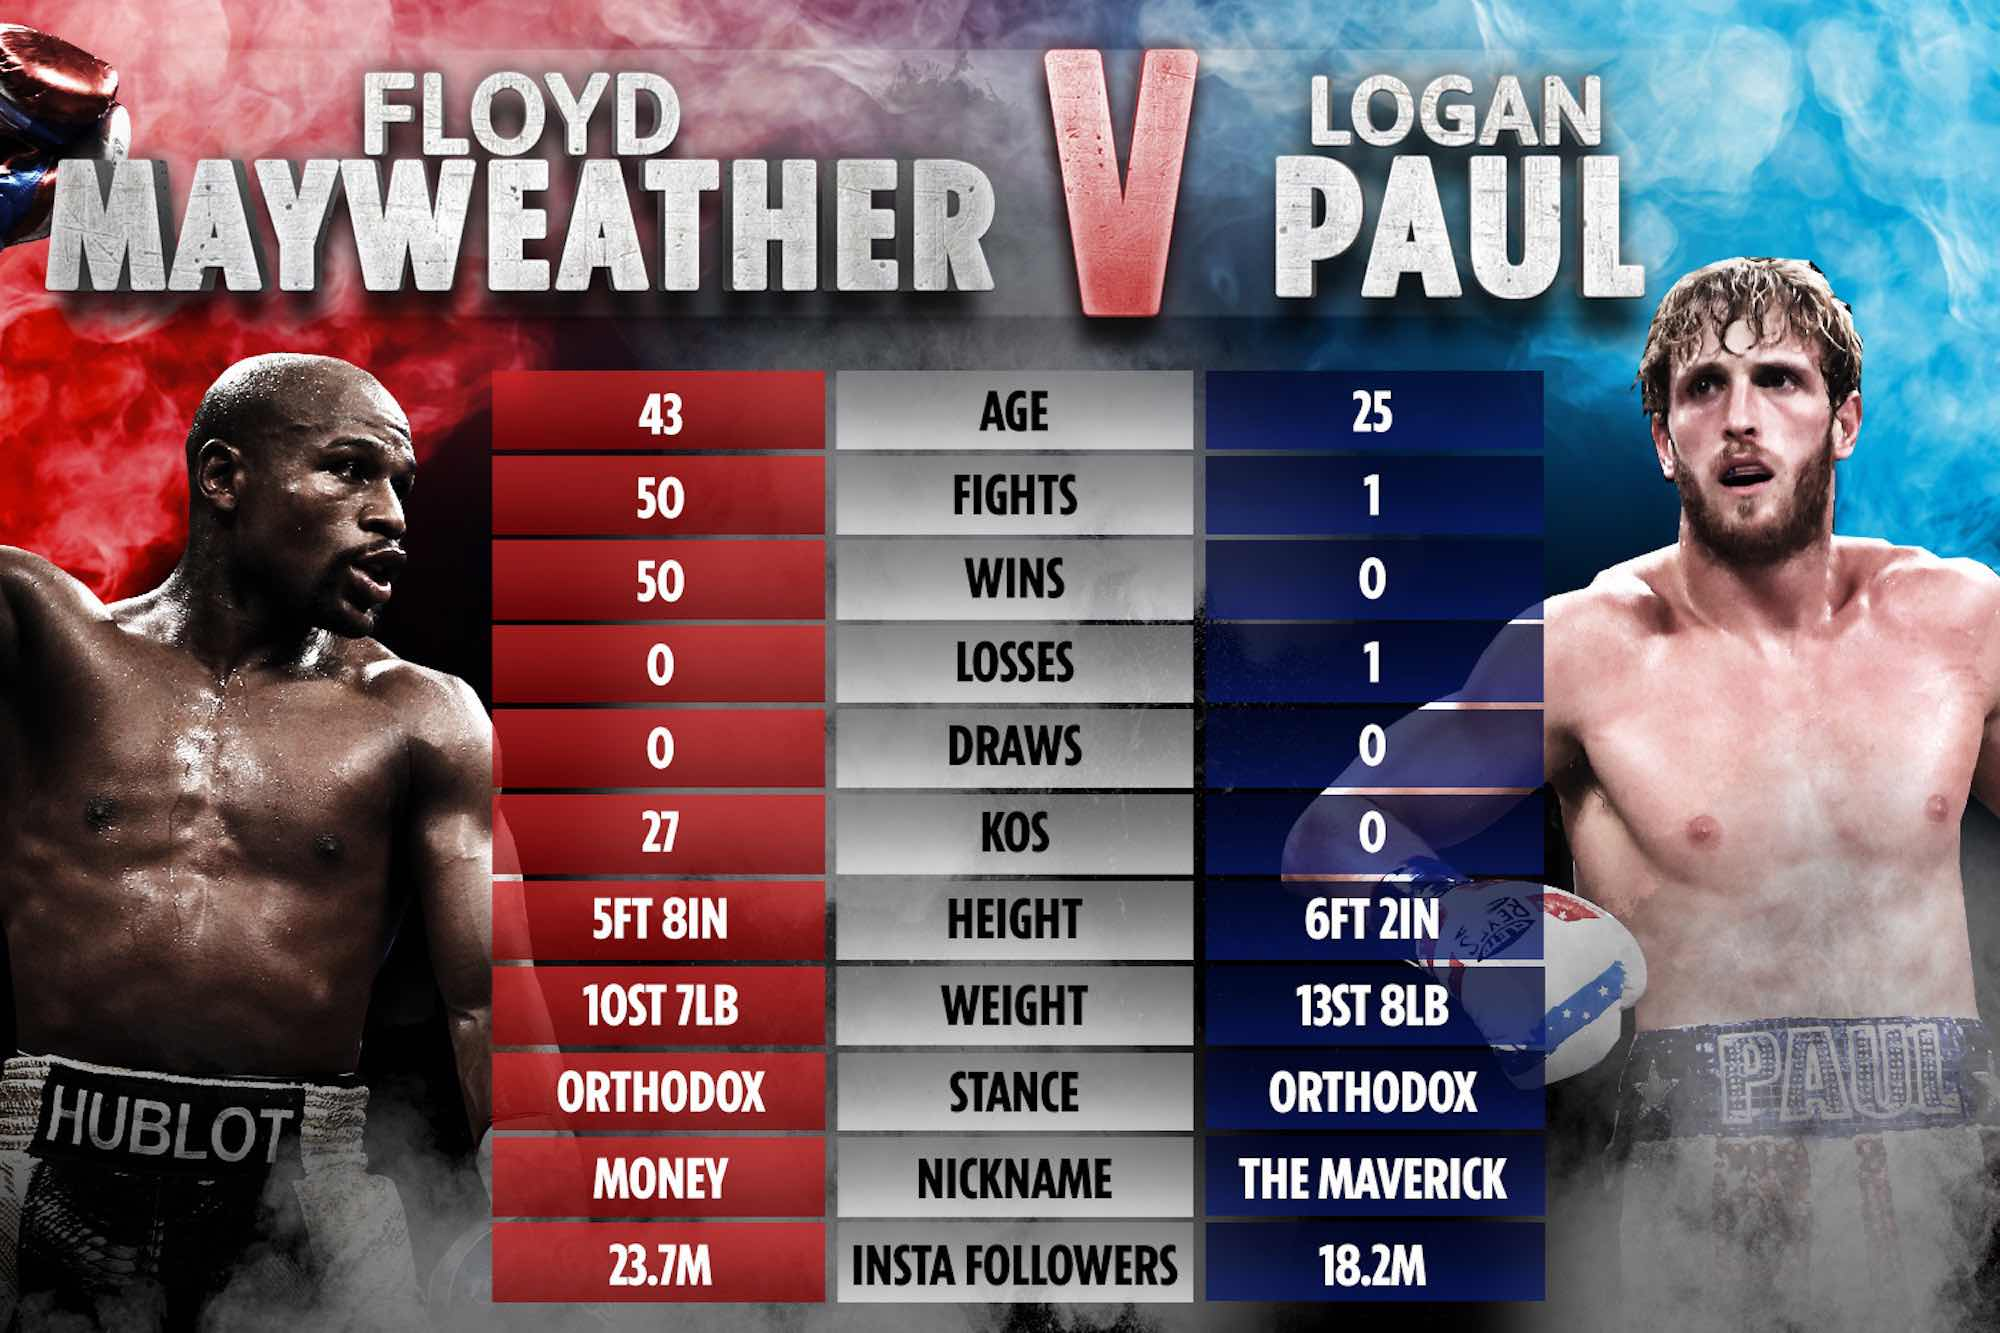 Logan Paul is going head-to-head with Floyd Mayweather in a fight to the finish. What round will Paul hit the canvas?